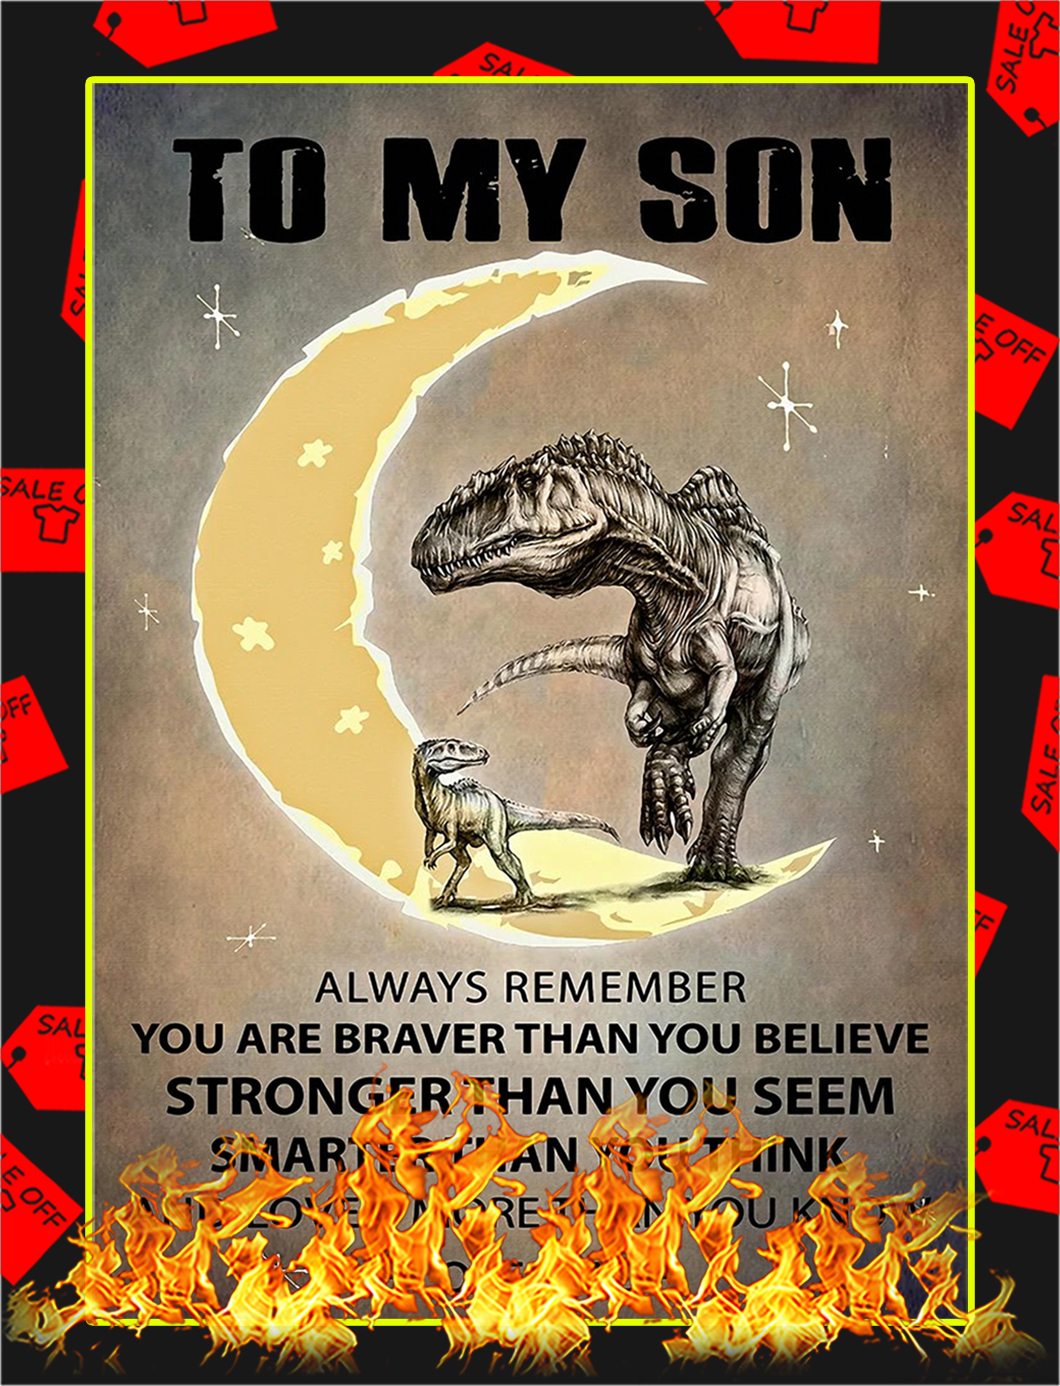 Dinosaur Dad to my son poster - A1